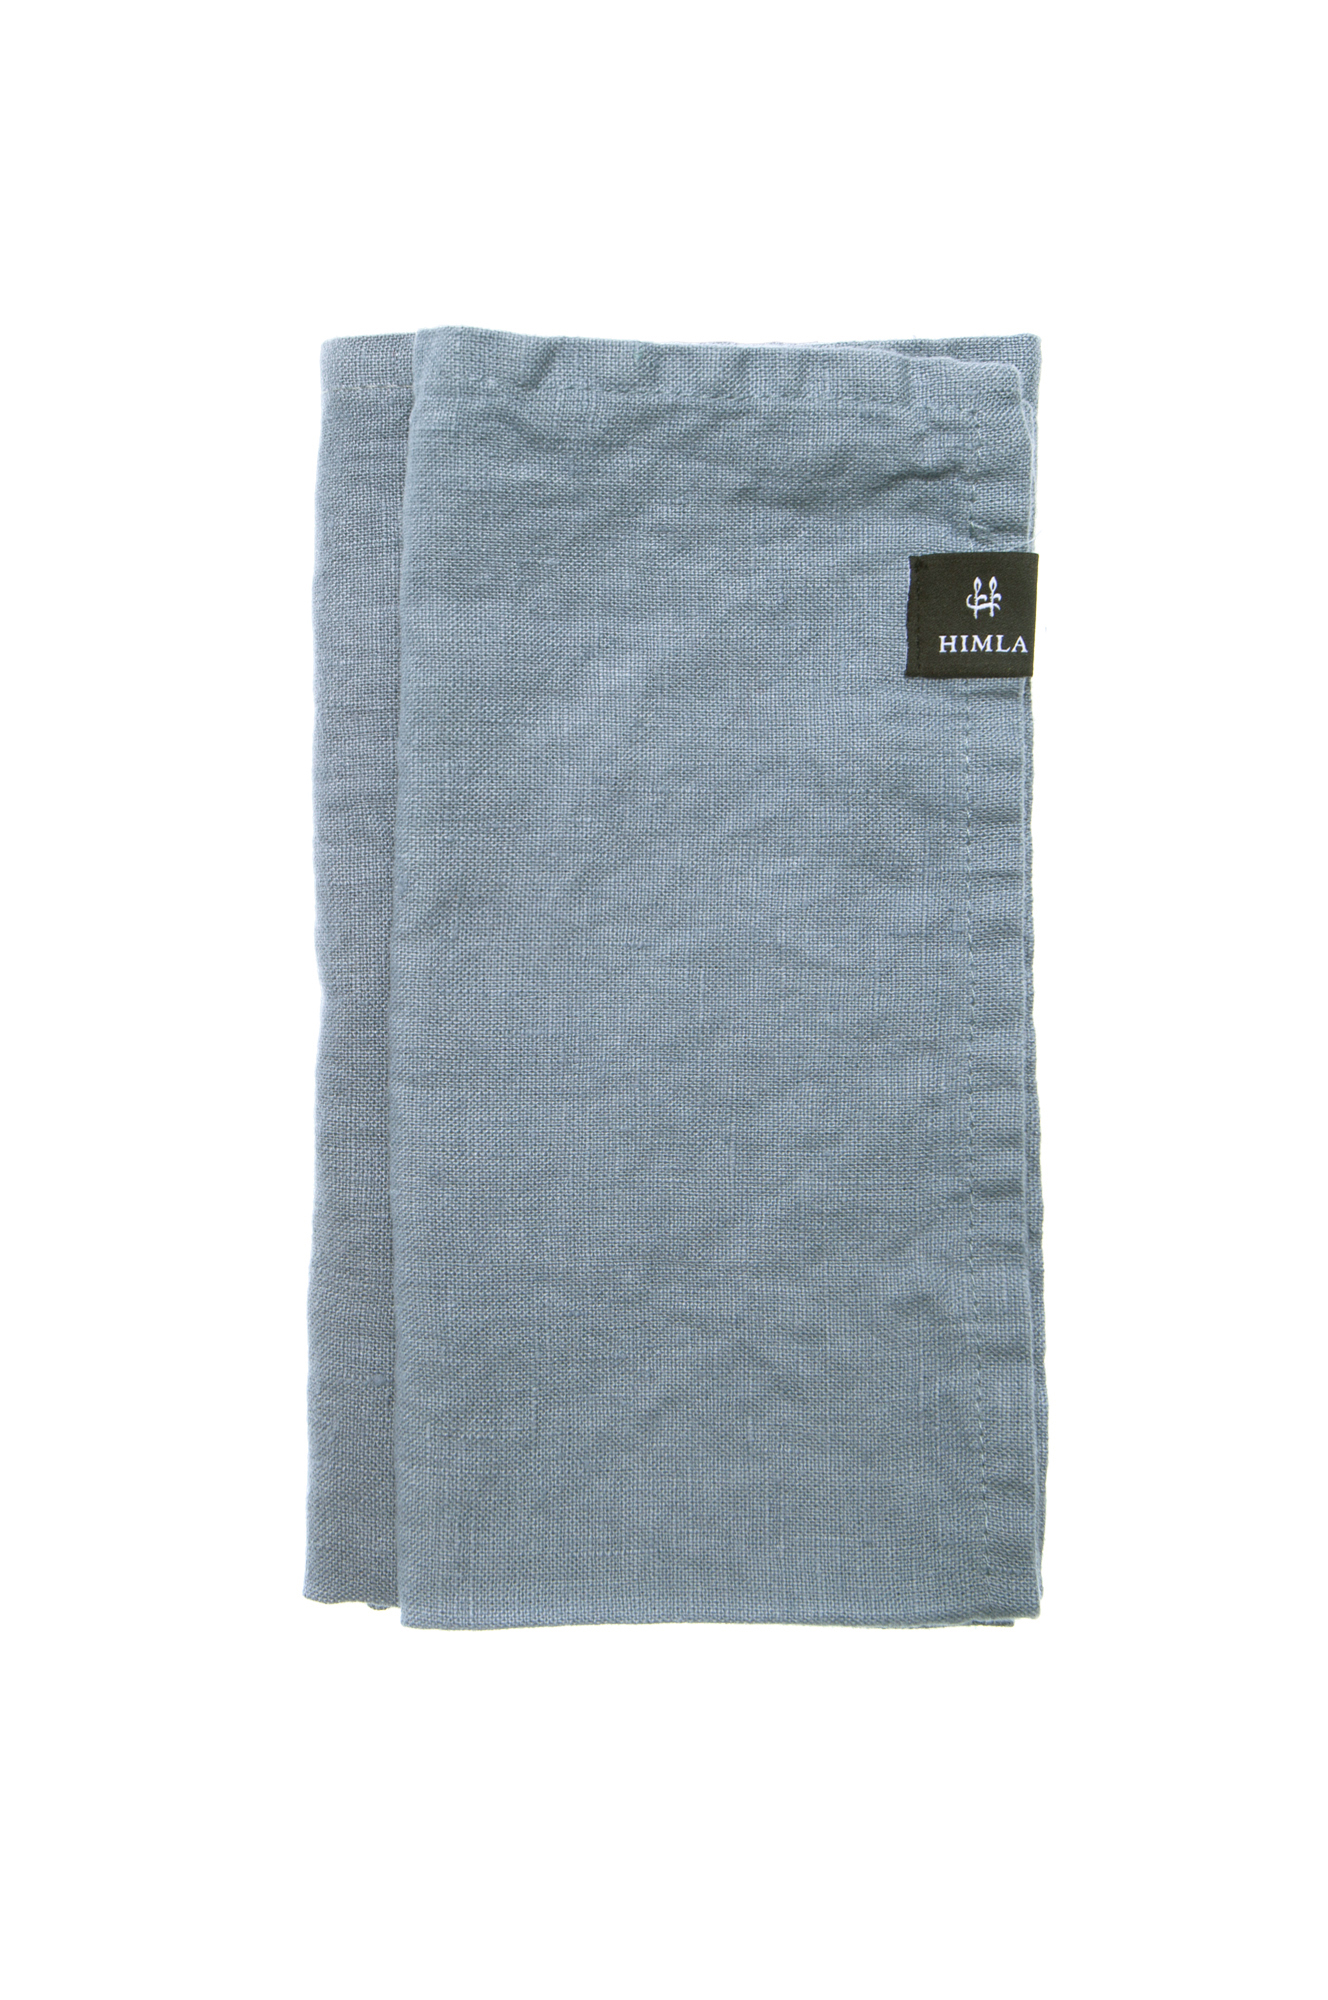 Peaceful Sunshine Linen Napkin 45x45cm (Set of 4)